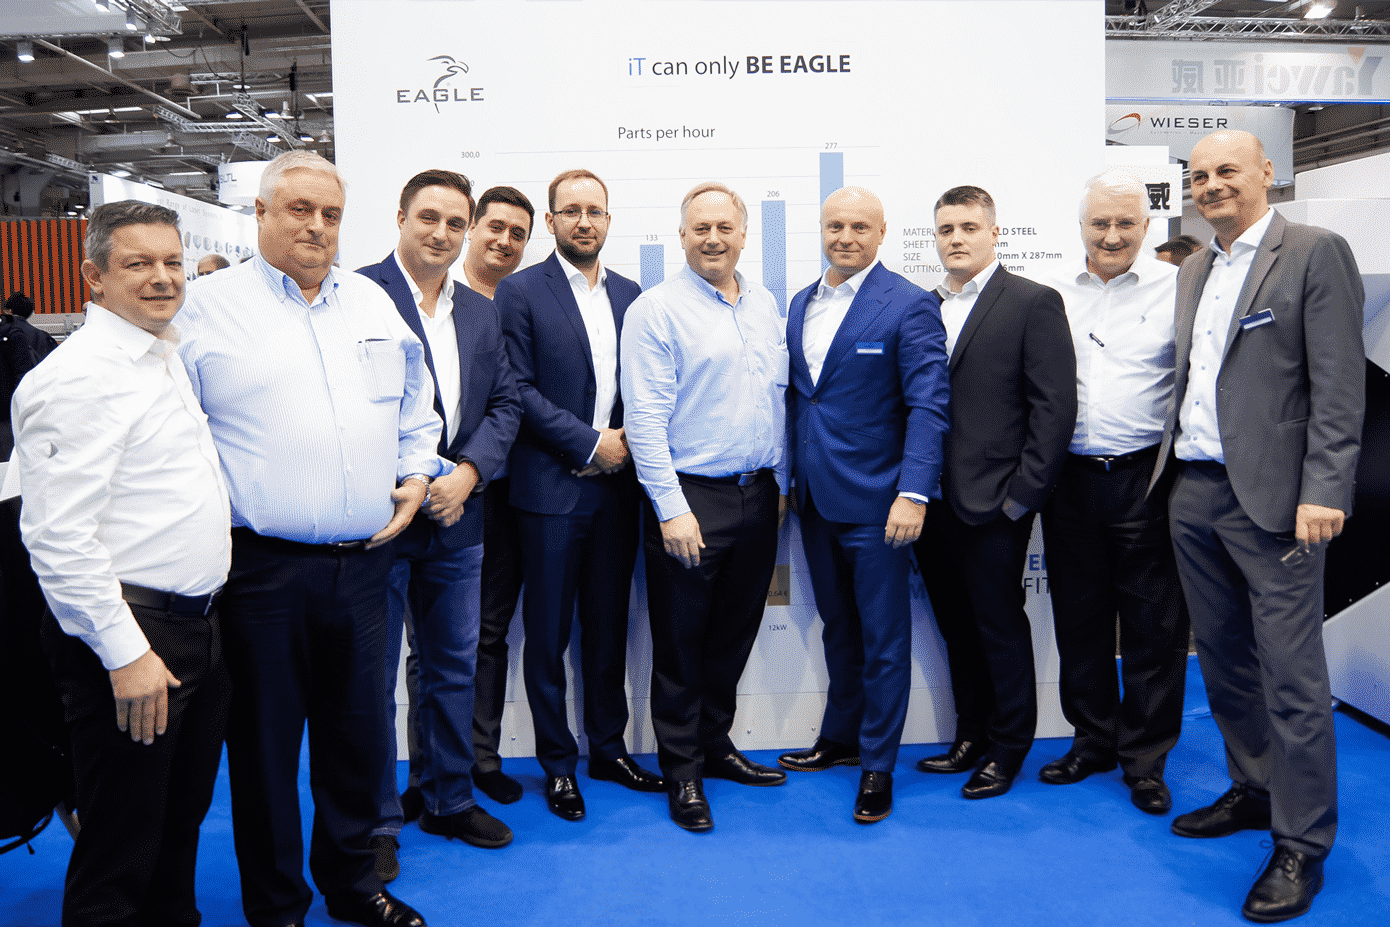 The UK Machinery Group at EuroBLECH